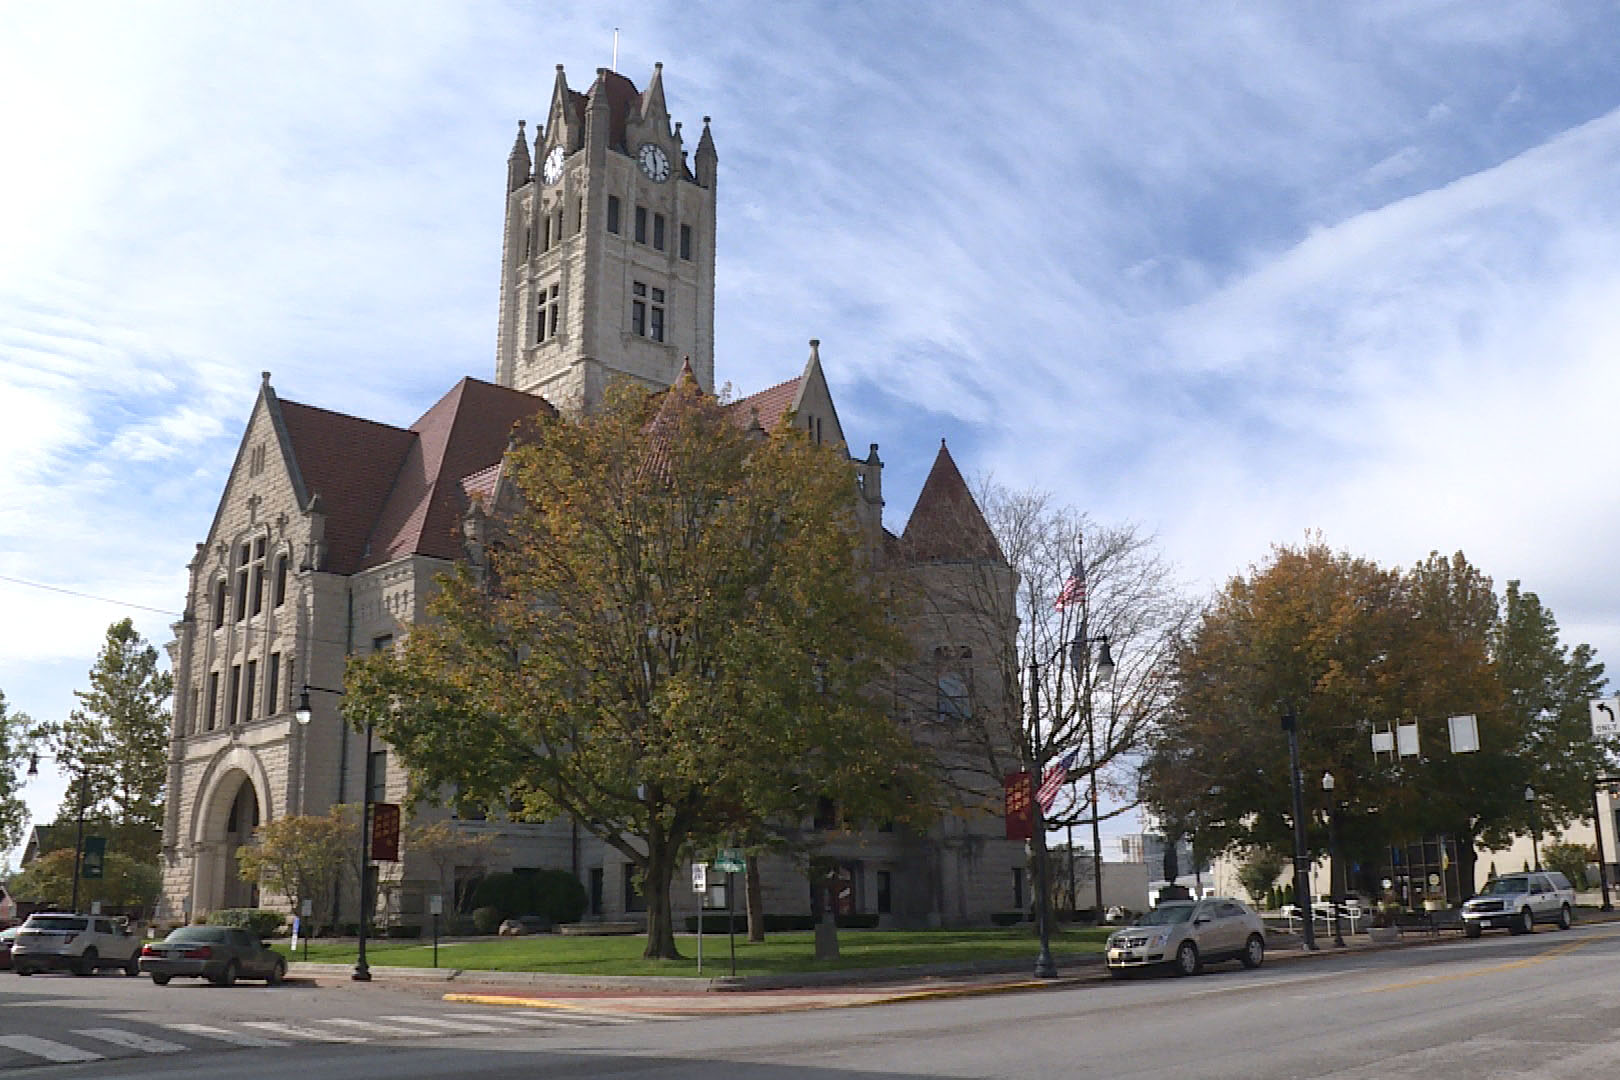 The Hancock County council will decide whether to approve the funding request Nov. 8.